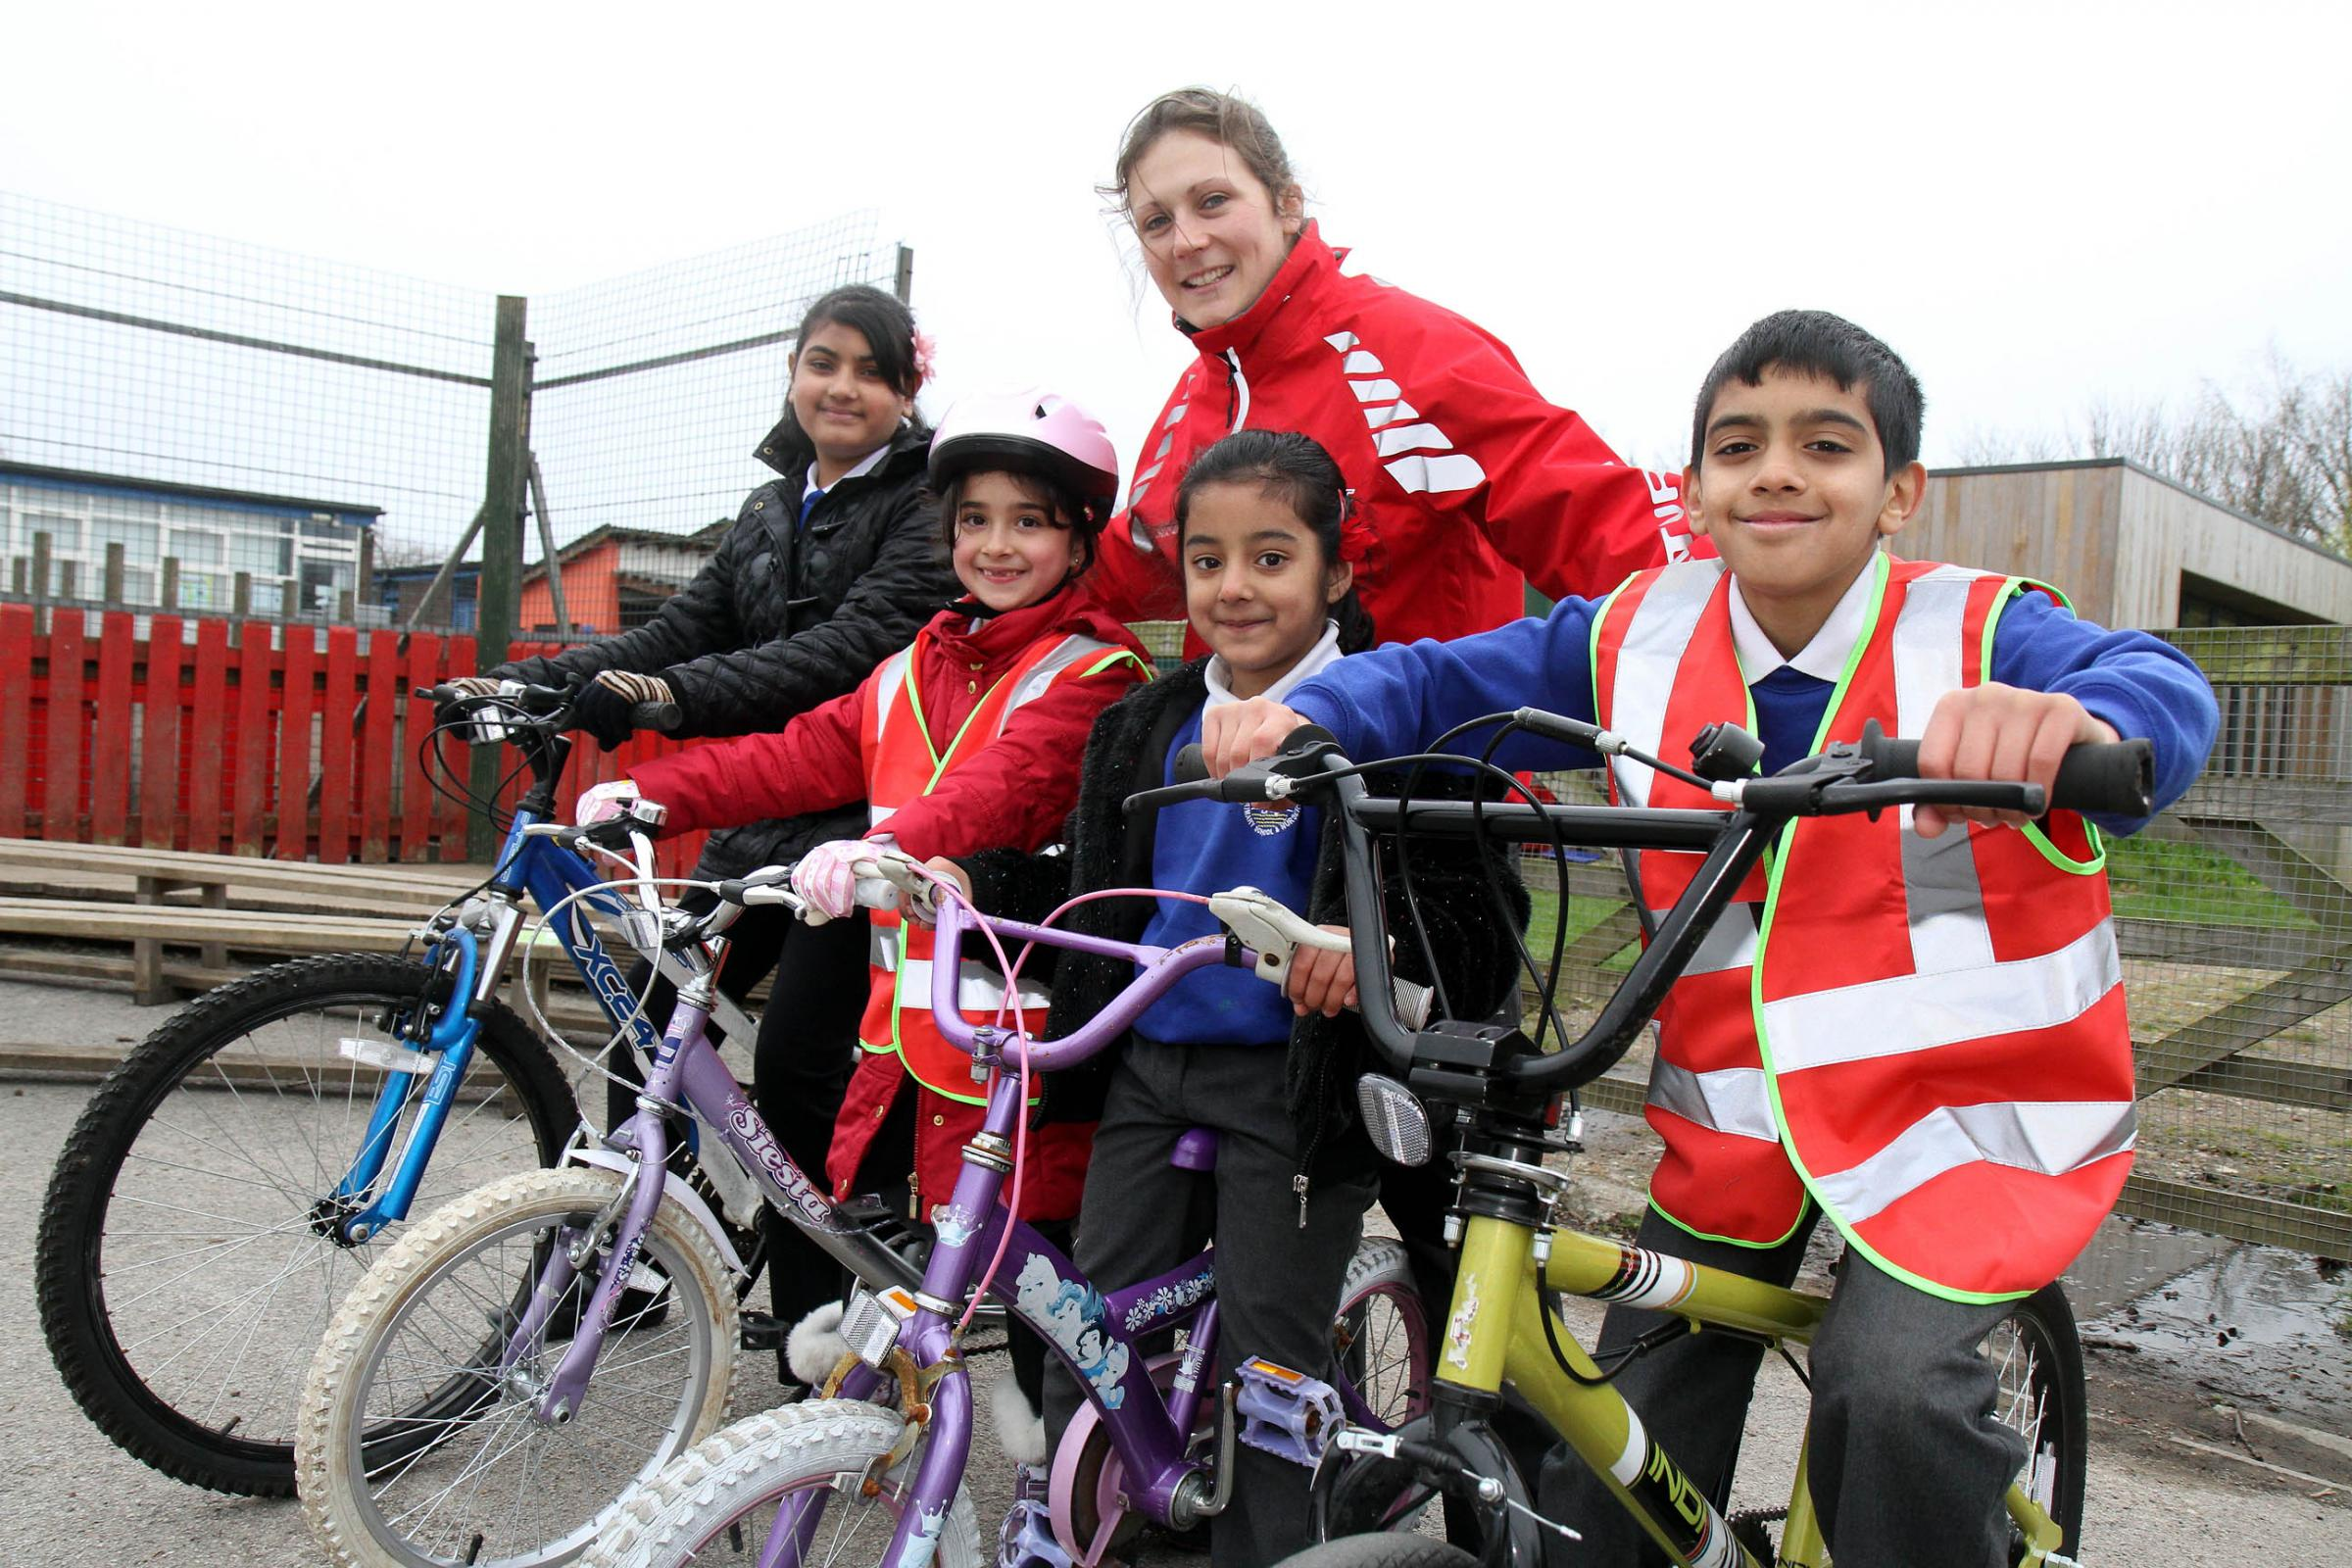 Joining in the cycling session with Emily Groves, of Sustrans, are St Mary's Primary School pupils (from left) Sanya Adrees, Sophie Newton, Mahdiya Khan and Ibrahim Nazir